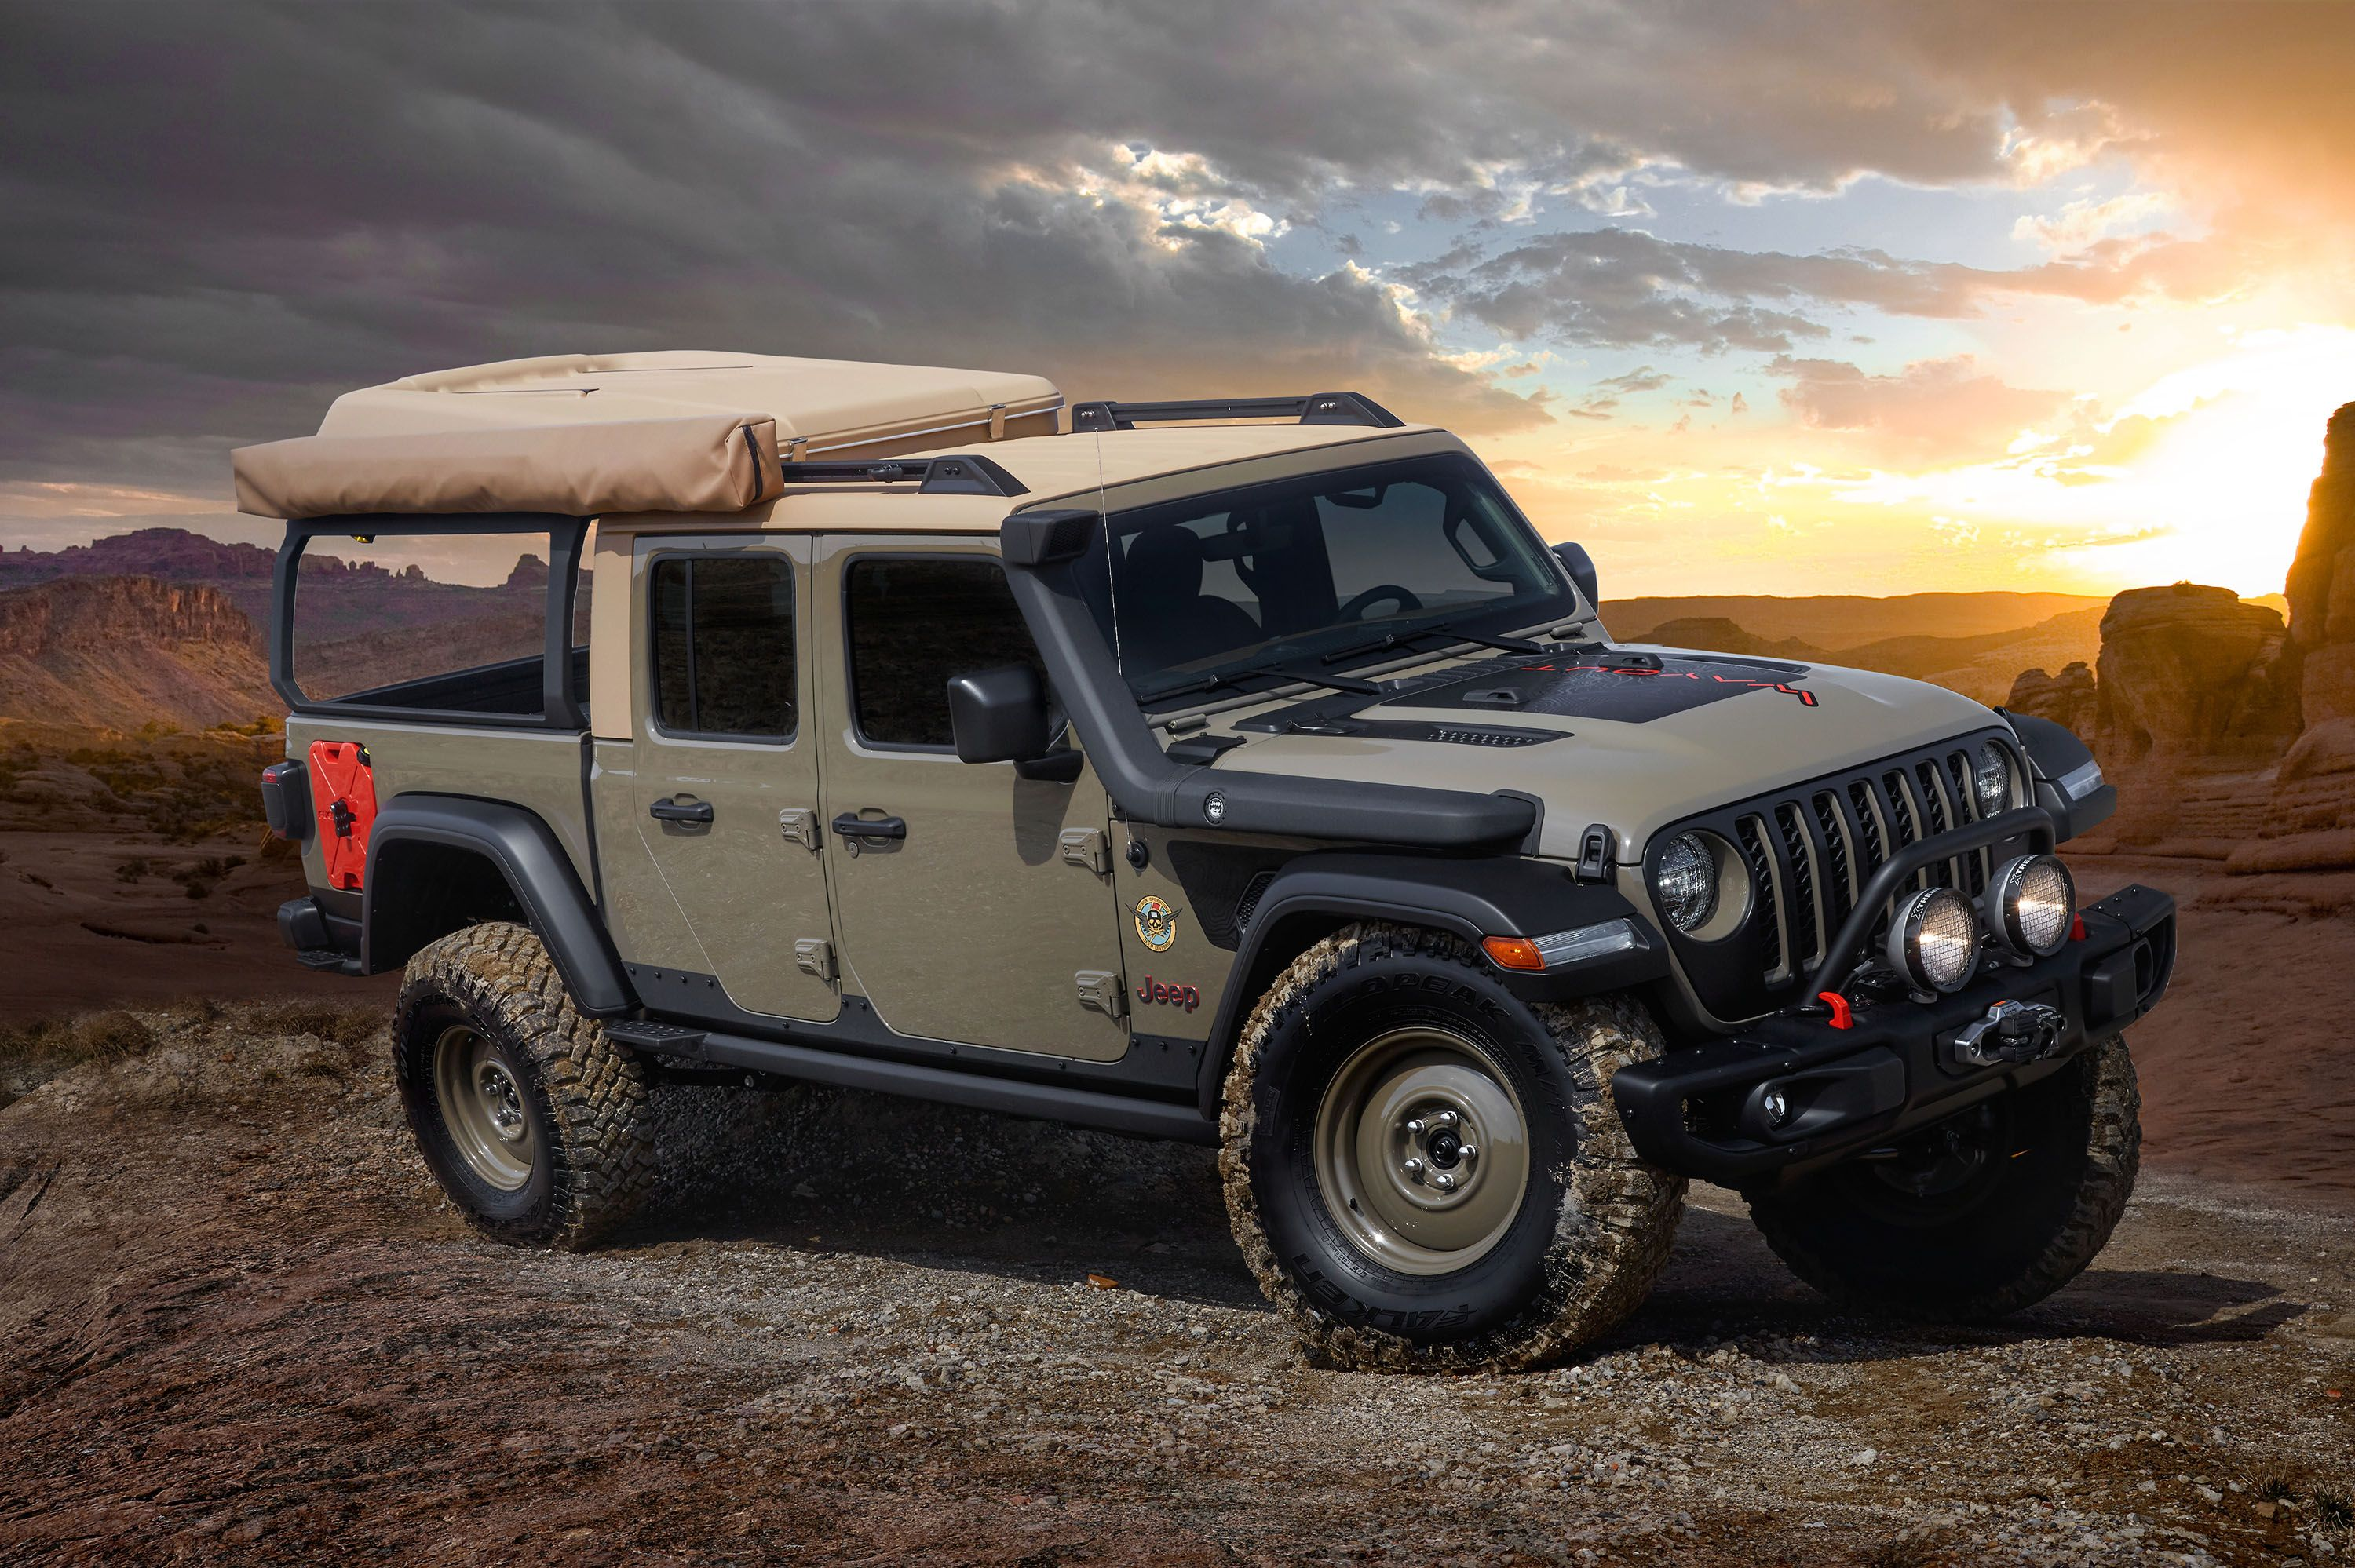 2019 Jeep Gladiator Wayout Concept Off Road Jeep Jeep Truck En Dirtbikes